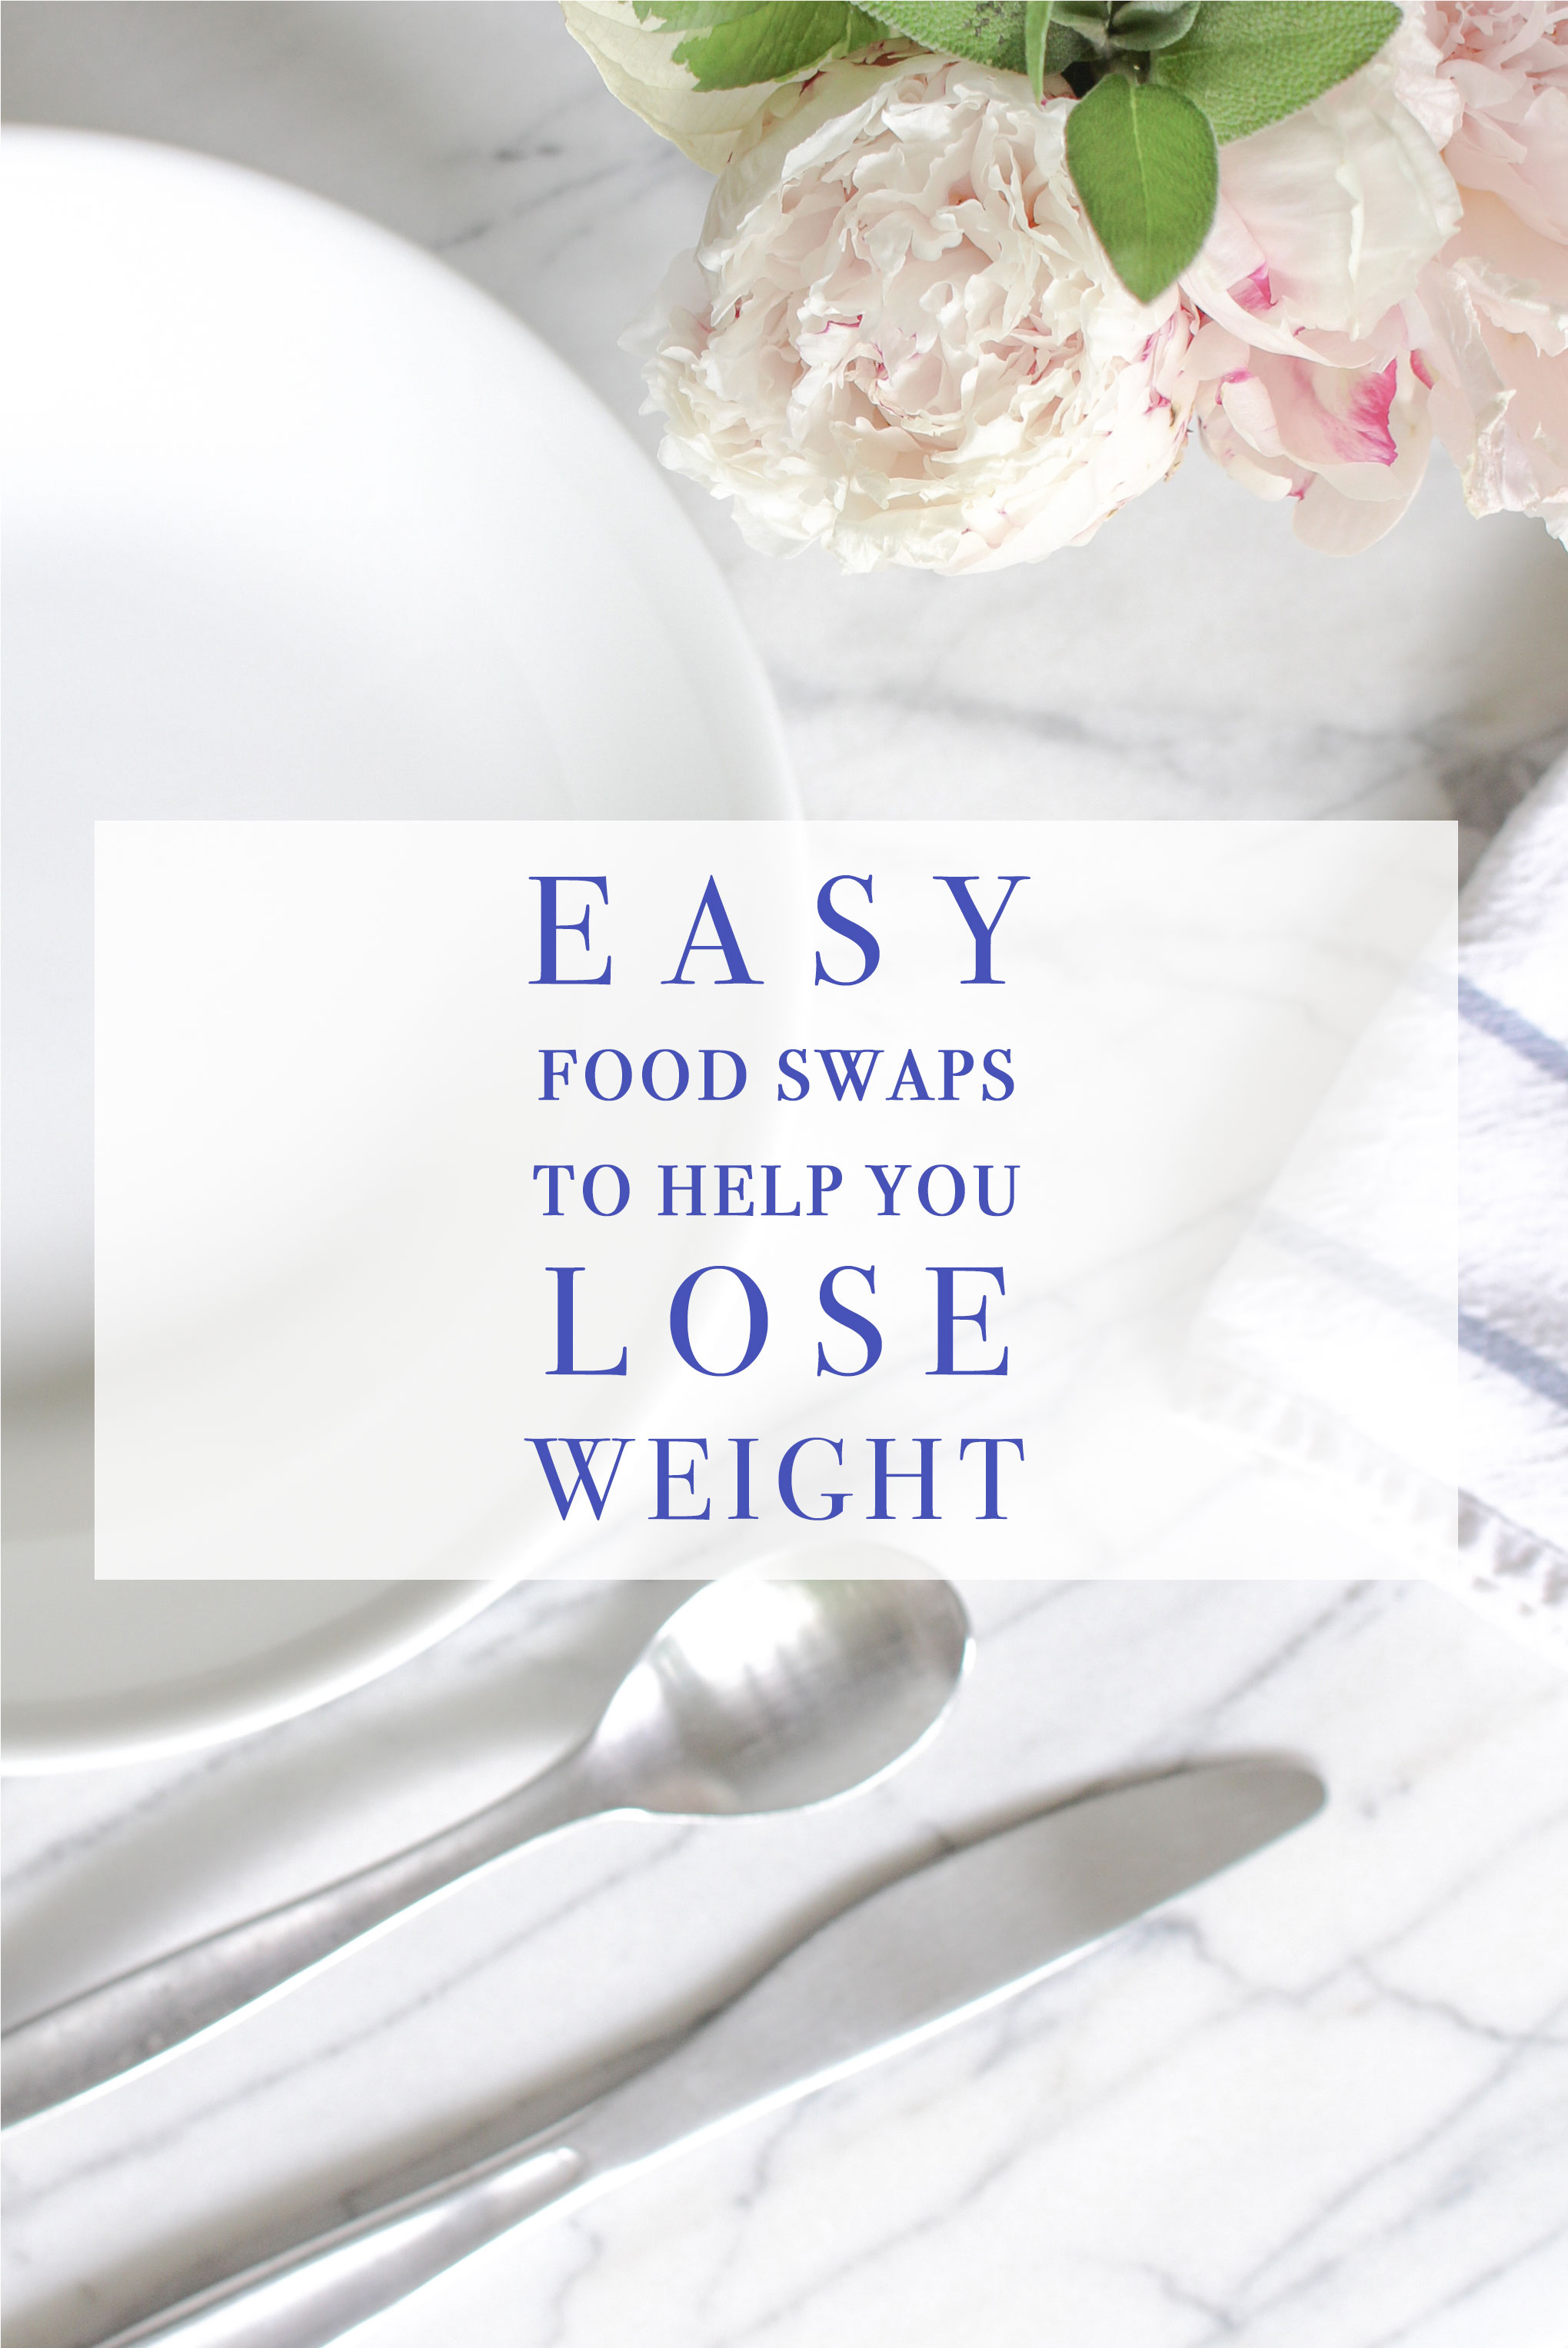 Weight loss plateau? Make these food swaps now for results! - Leigh Clair